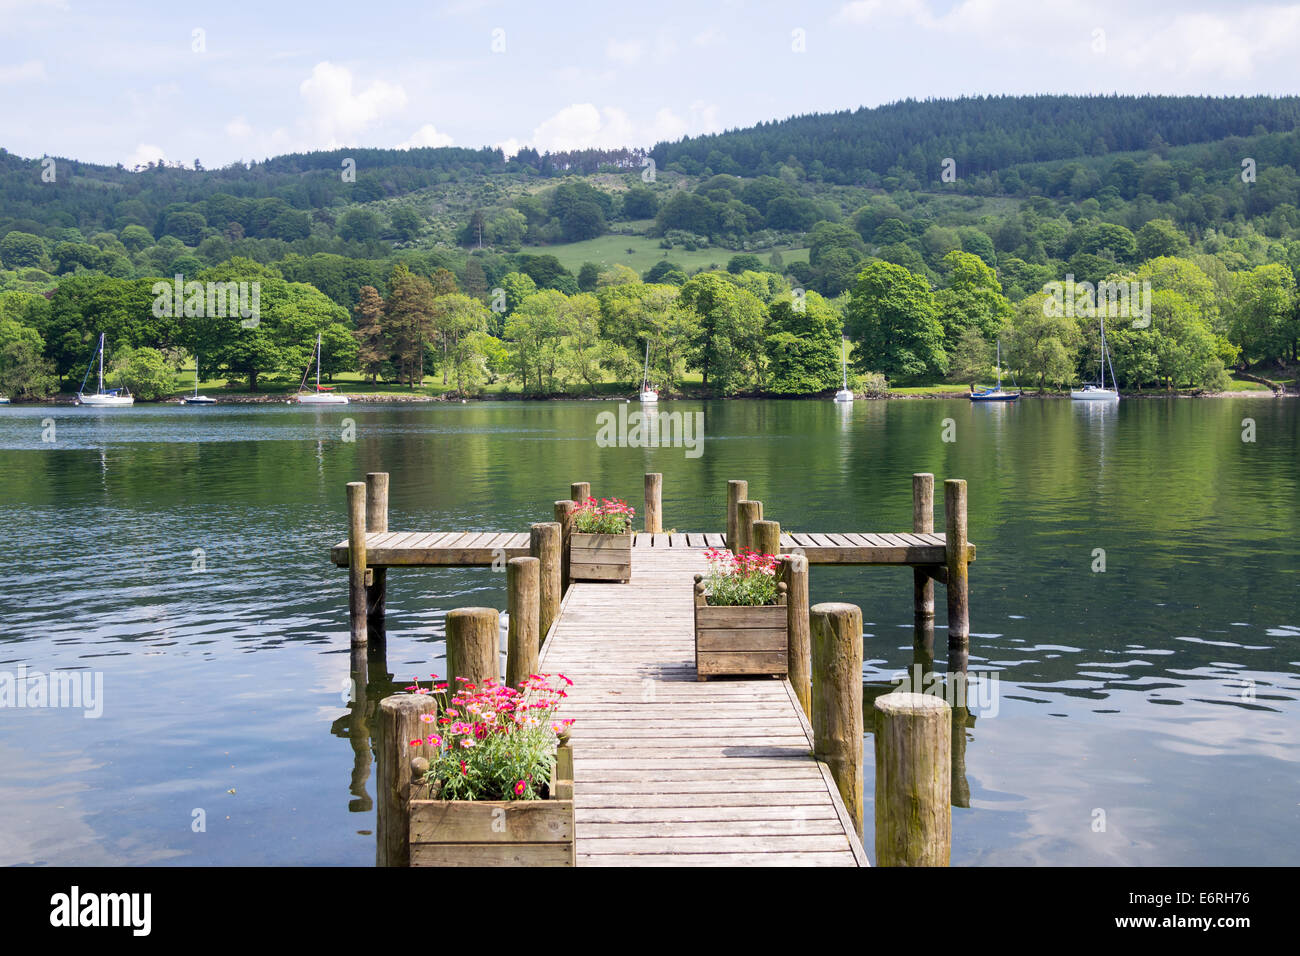 Summer scenery viewed over the Lake Windermere from Lakeside in the Lake District. - Stock Image